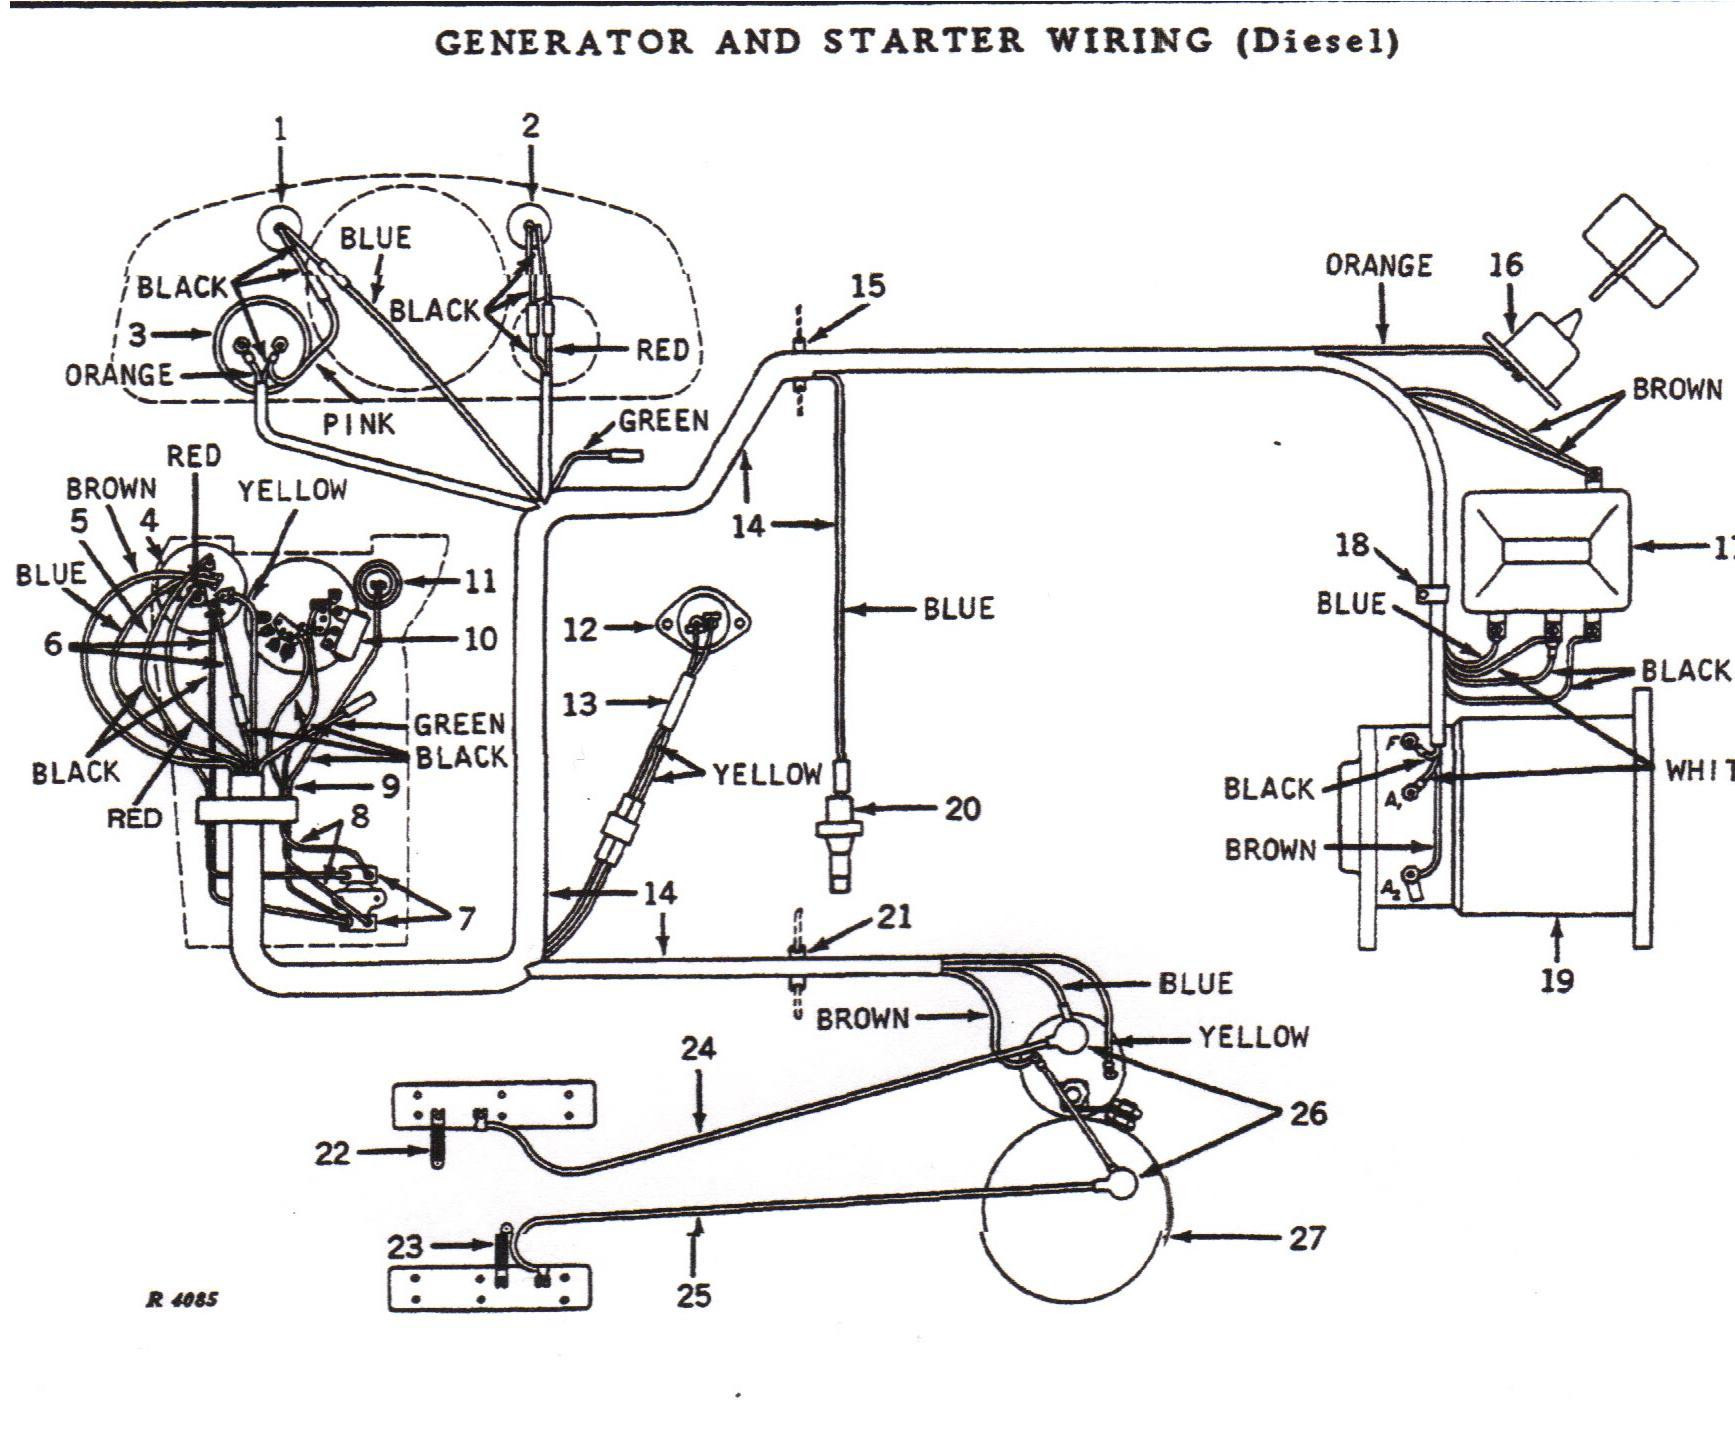 Wiring Diagram For Western Snow Plow